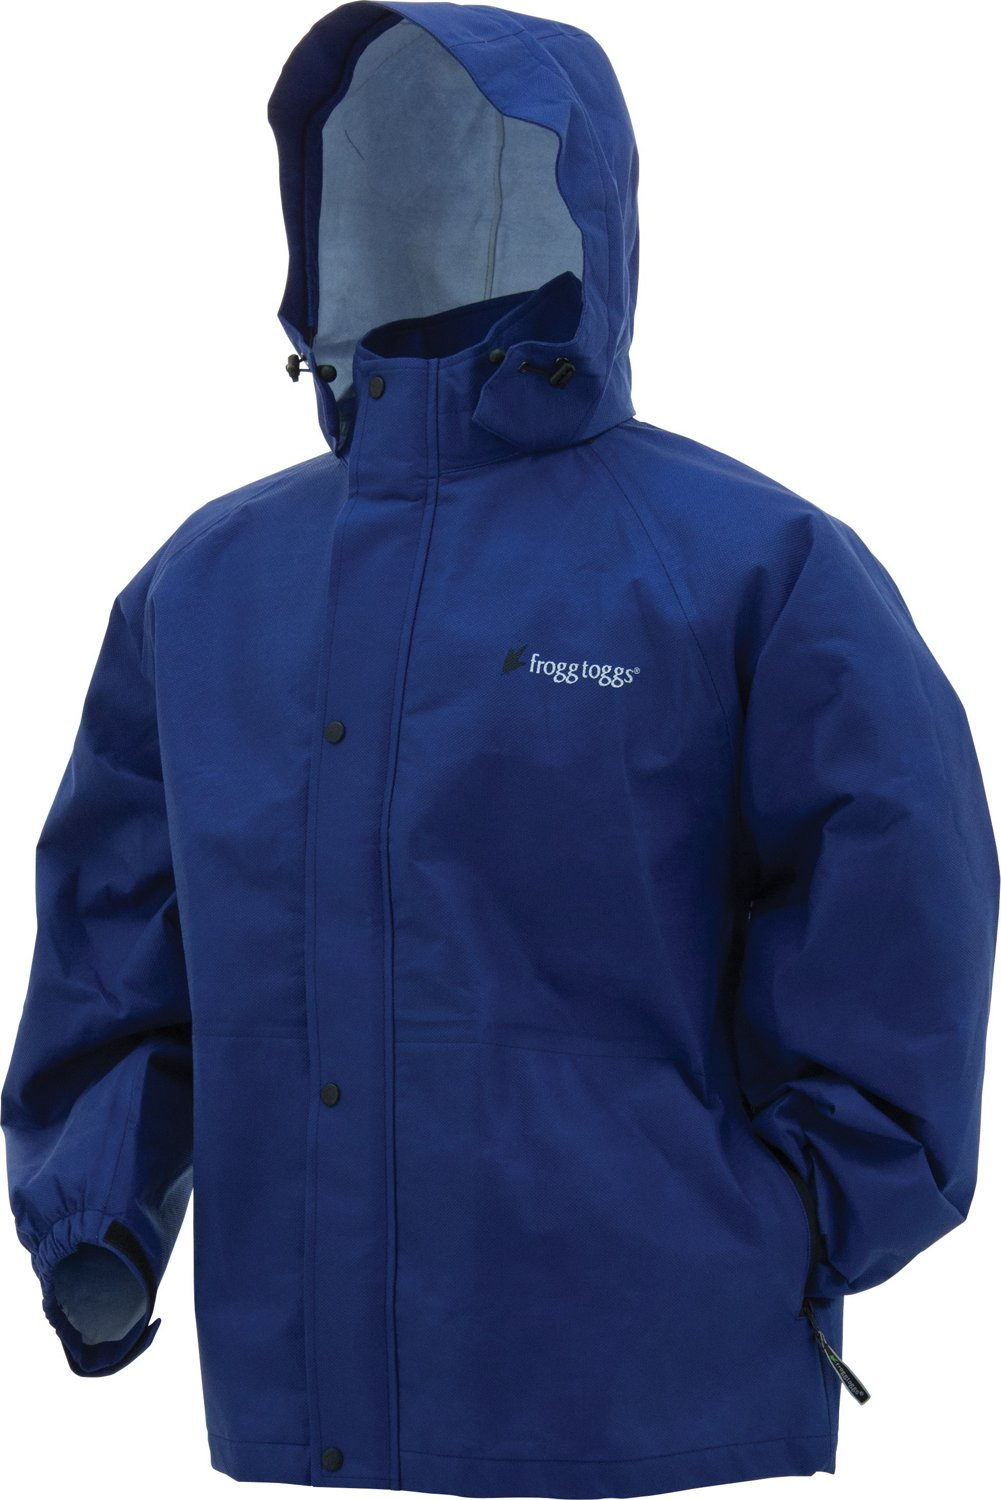 fb22e5816699e Display product reviews for Frogg toggs Men's Bull Frogg Rain Jacket